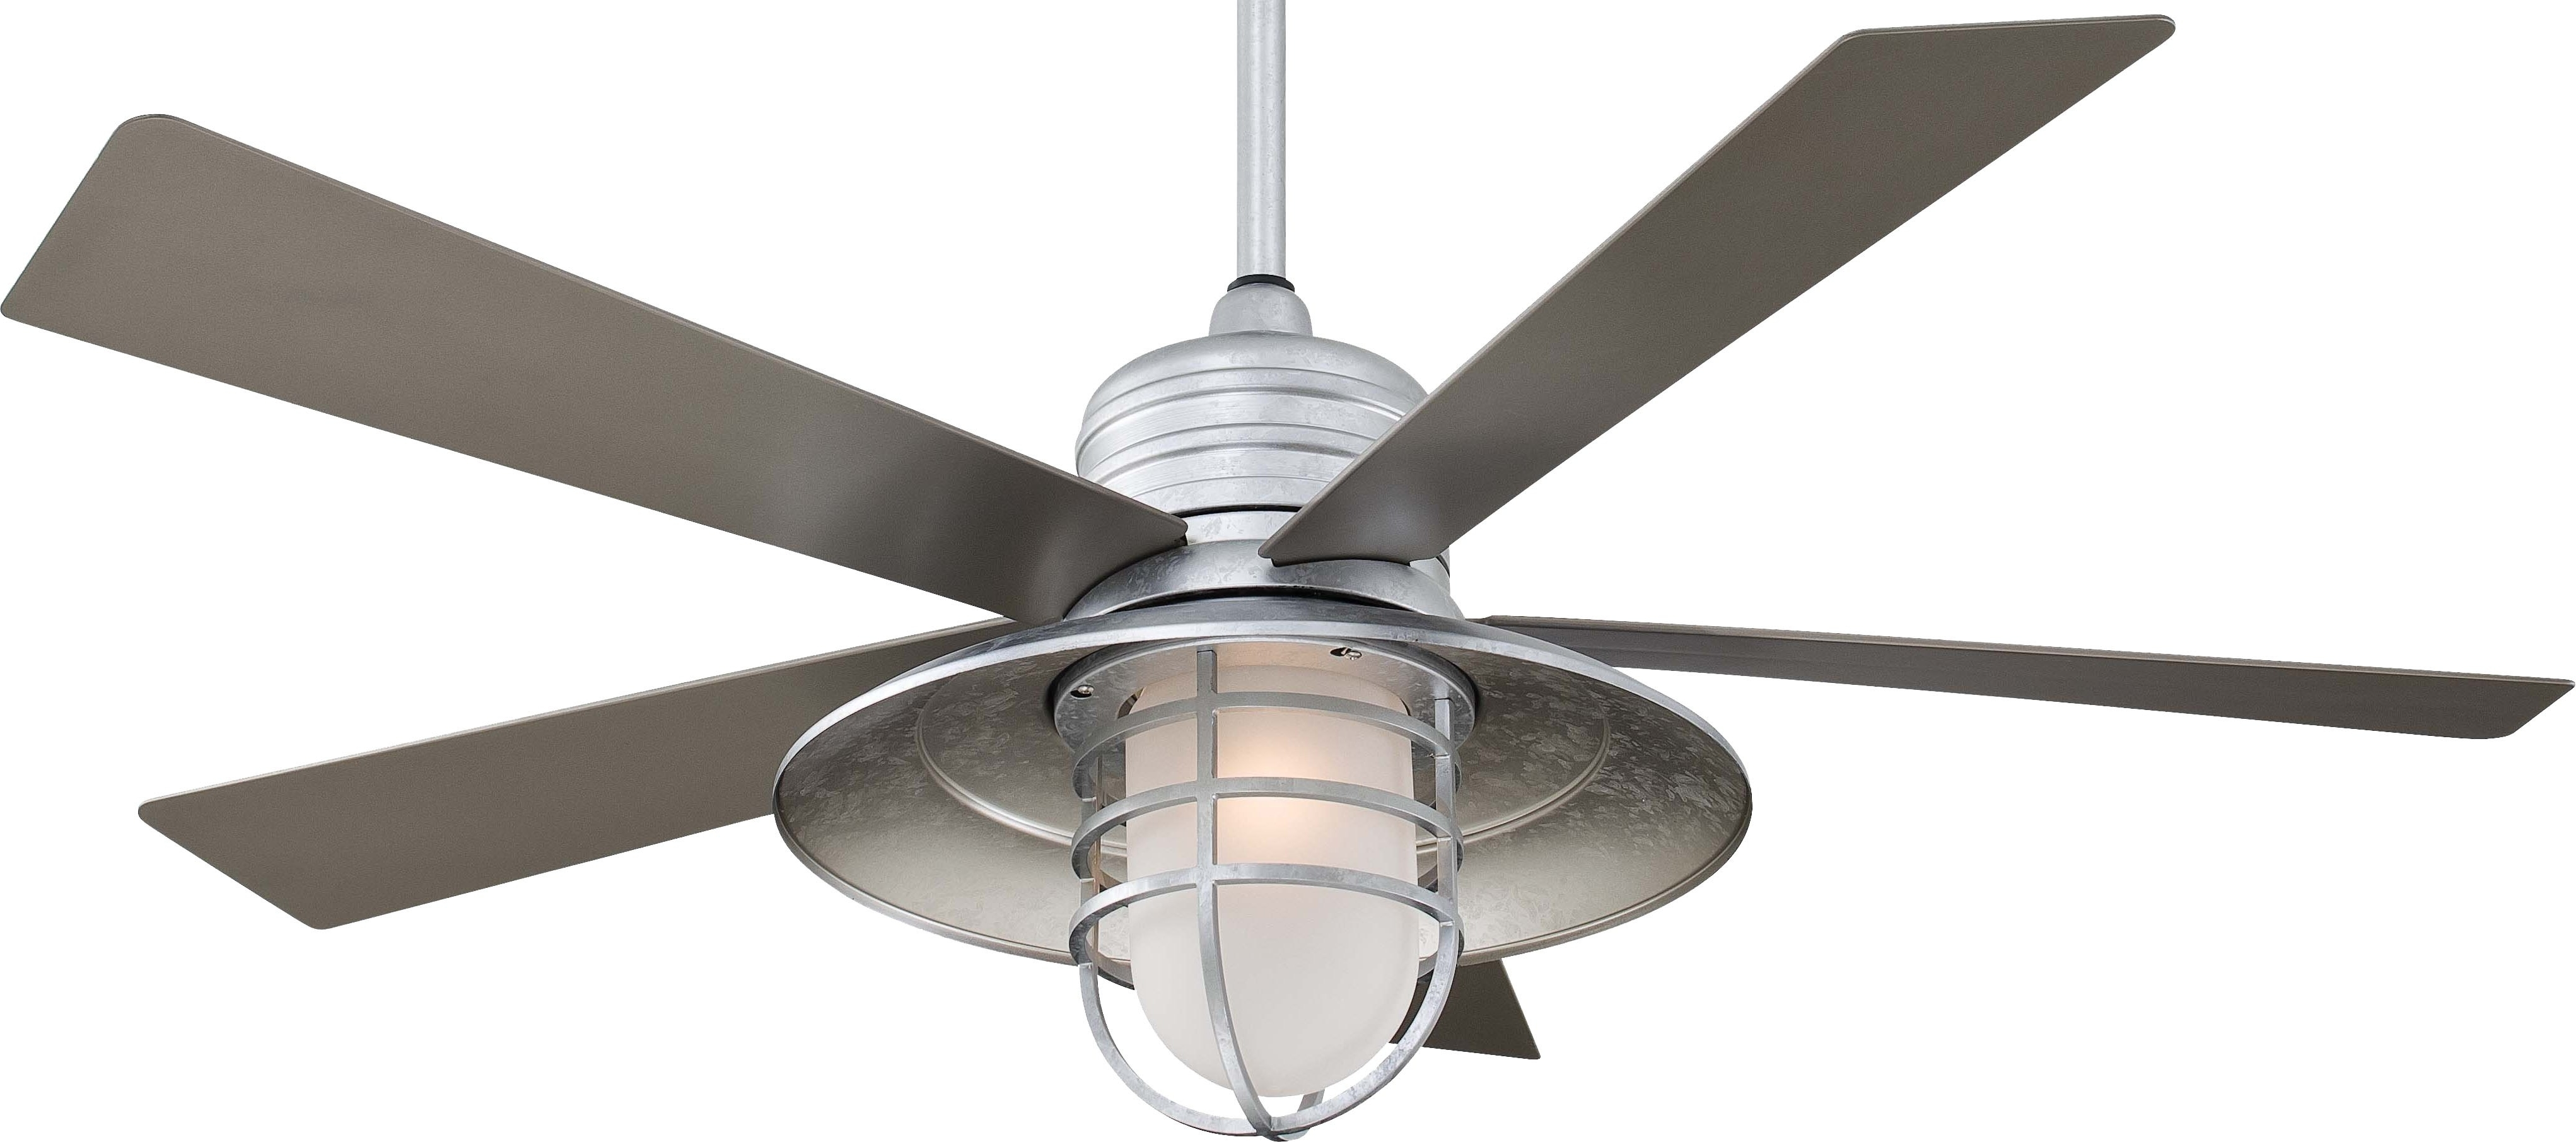 Industrial Outdoor Ceiling Fans Regarding Famous Astounding Image Outdoor Ceiling Fan Light Kit Style Sunroom Outdoor (Gallery 4 of 20)